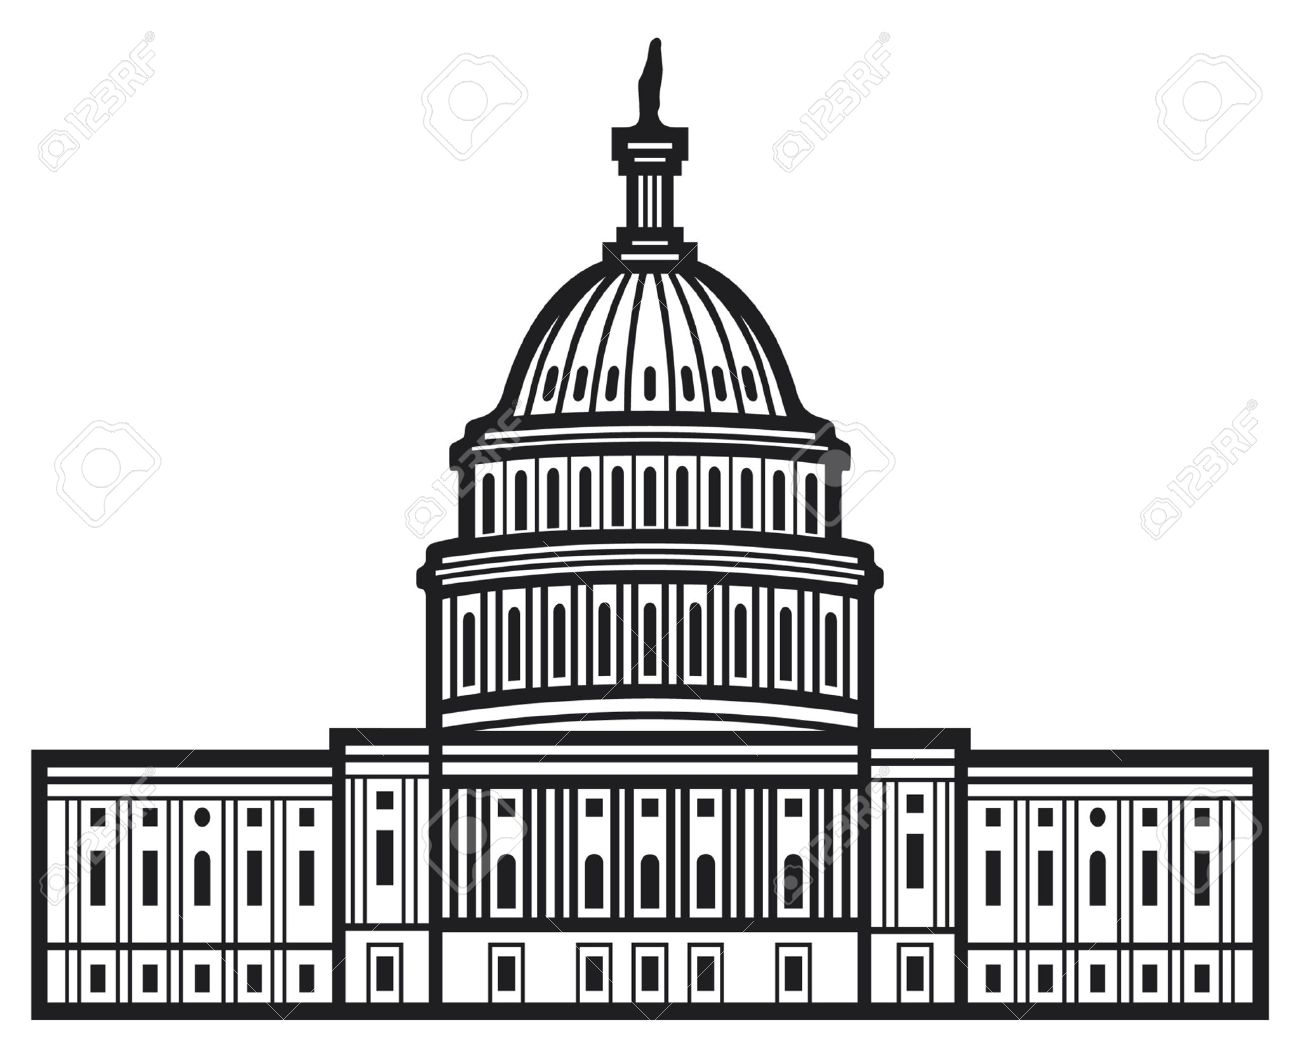 Capital Clip Art - Capital Clipart